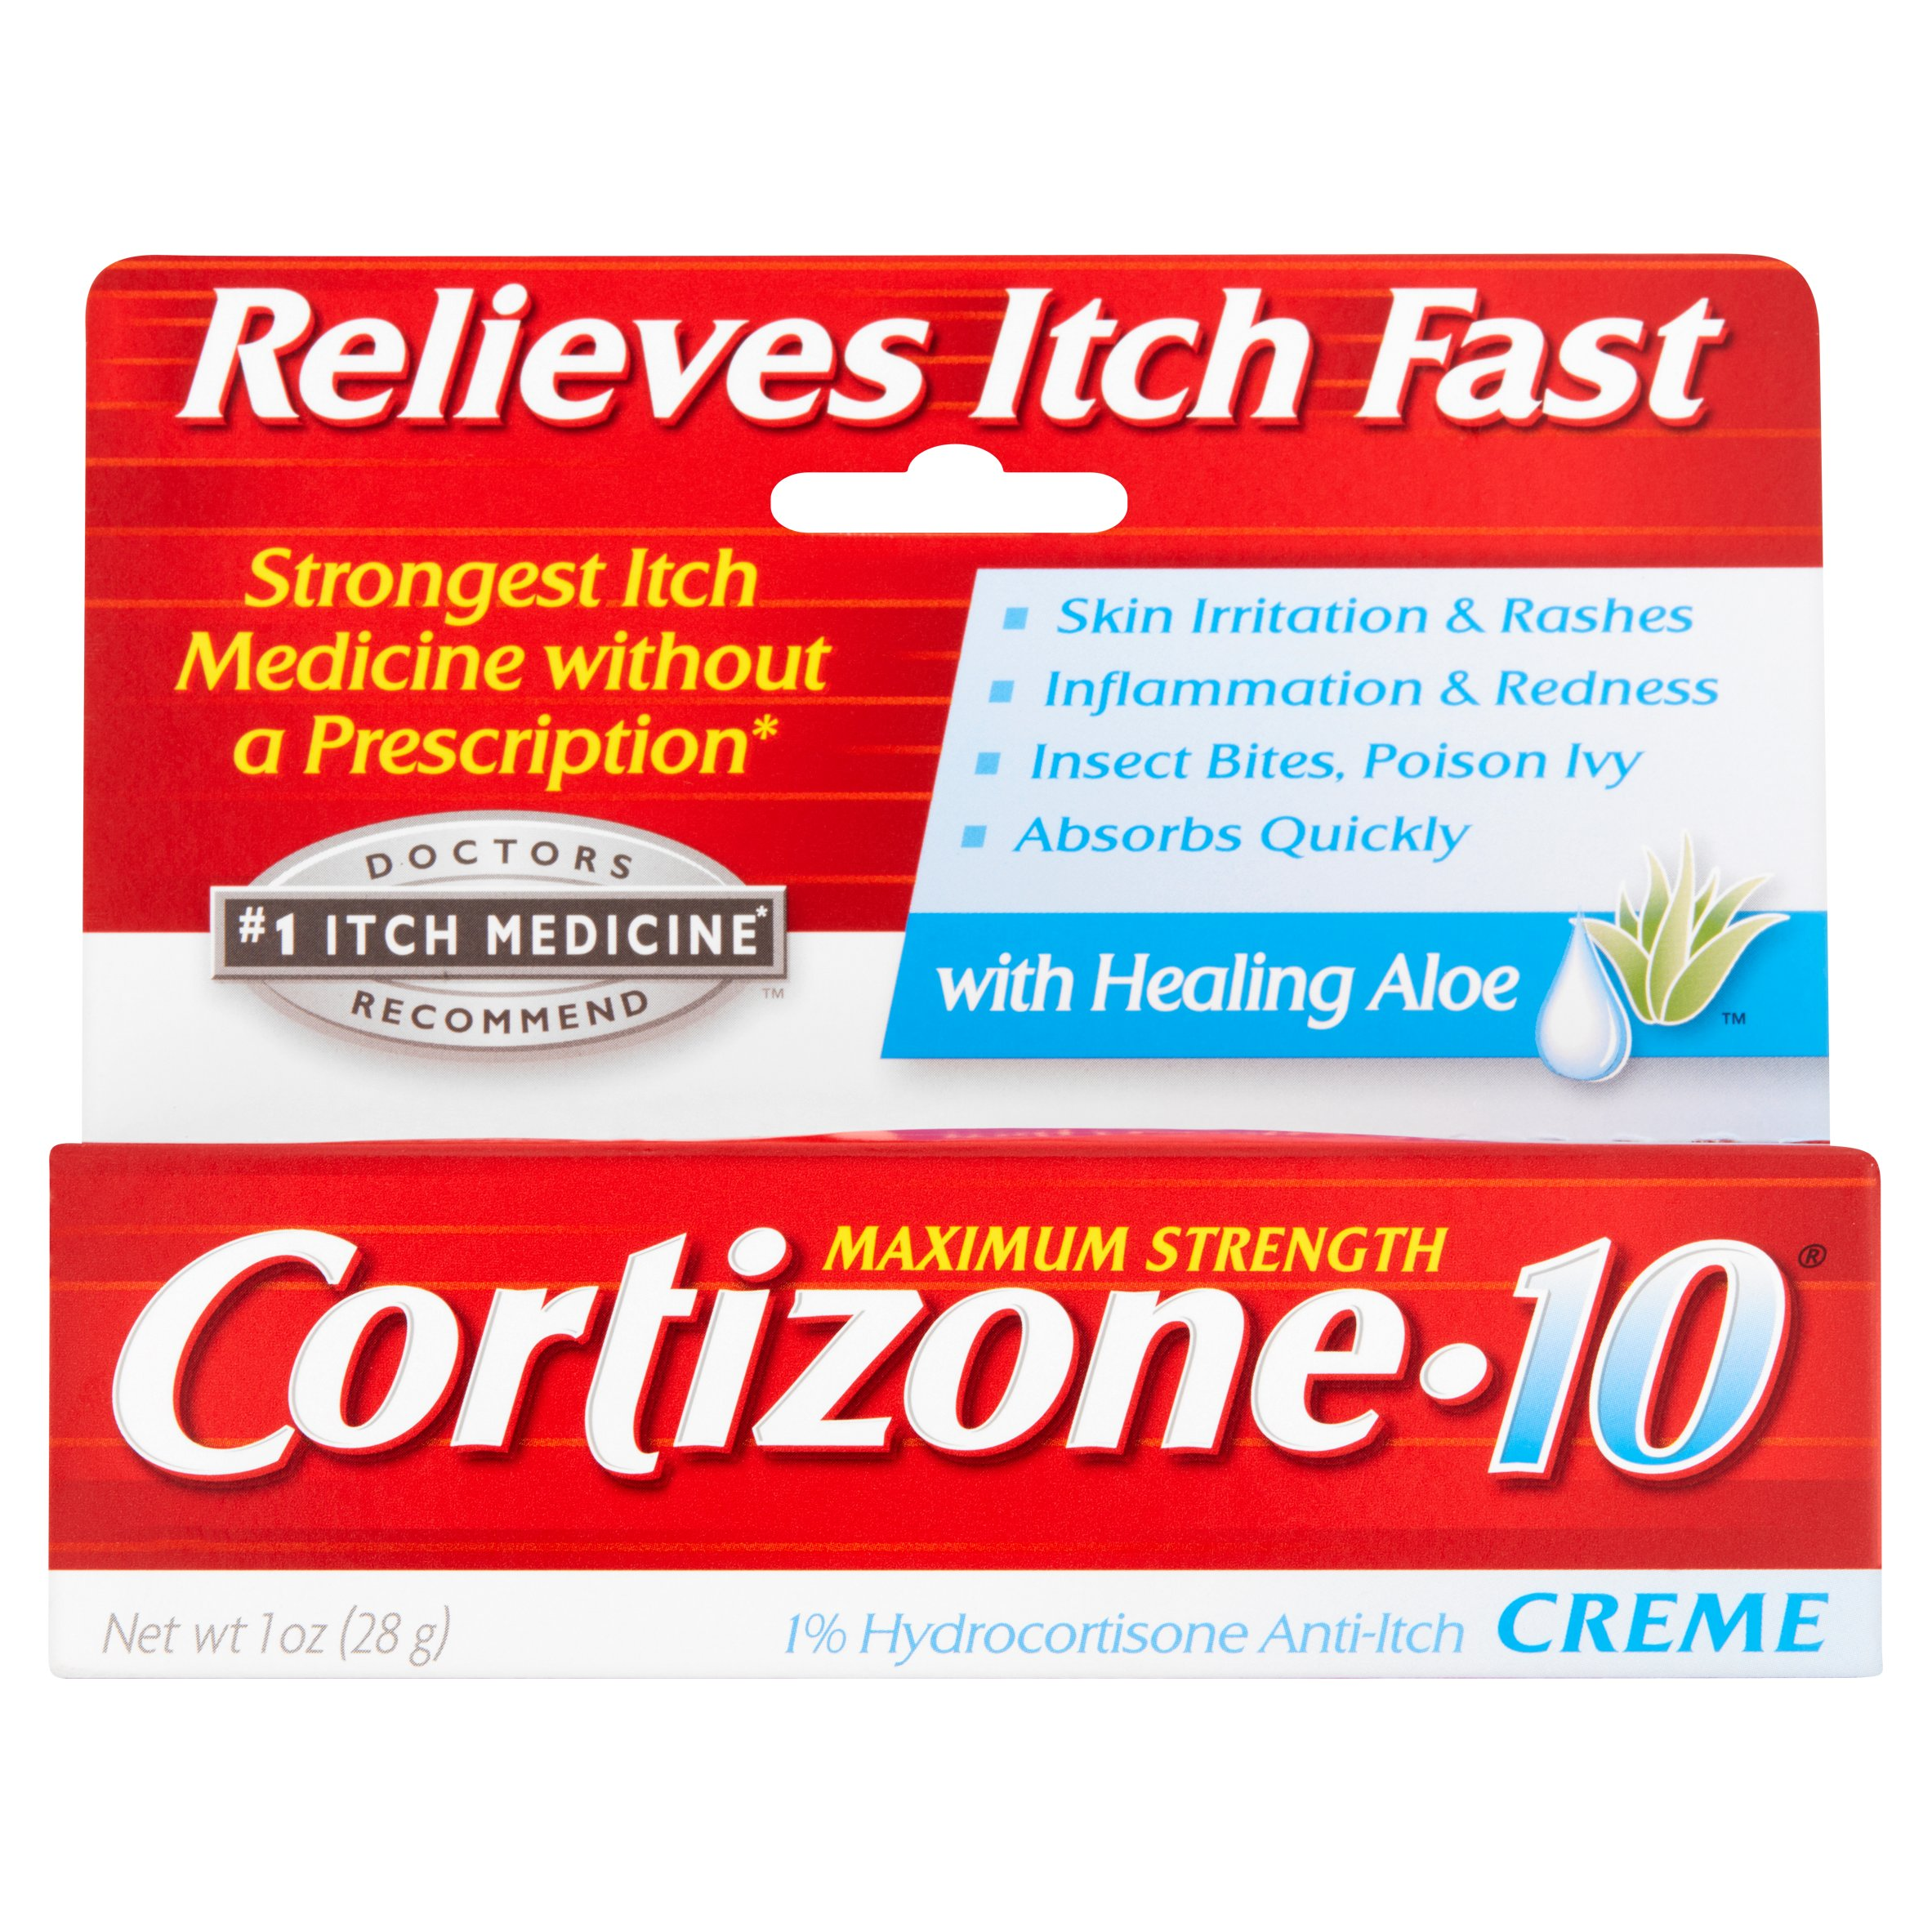 Cortizone 10 Maximum Strength 1% Hydrocortisone Anti-Itch Crème, 1oz